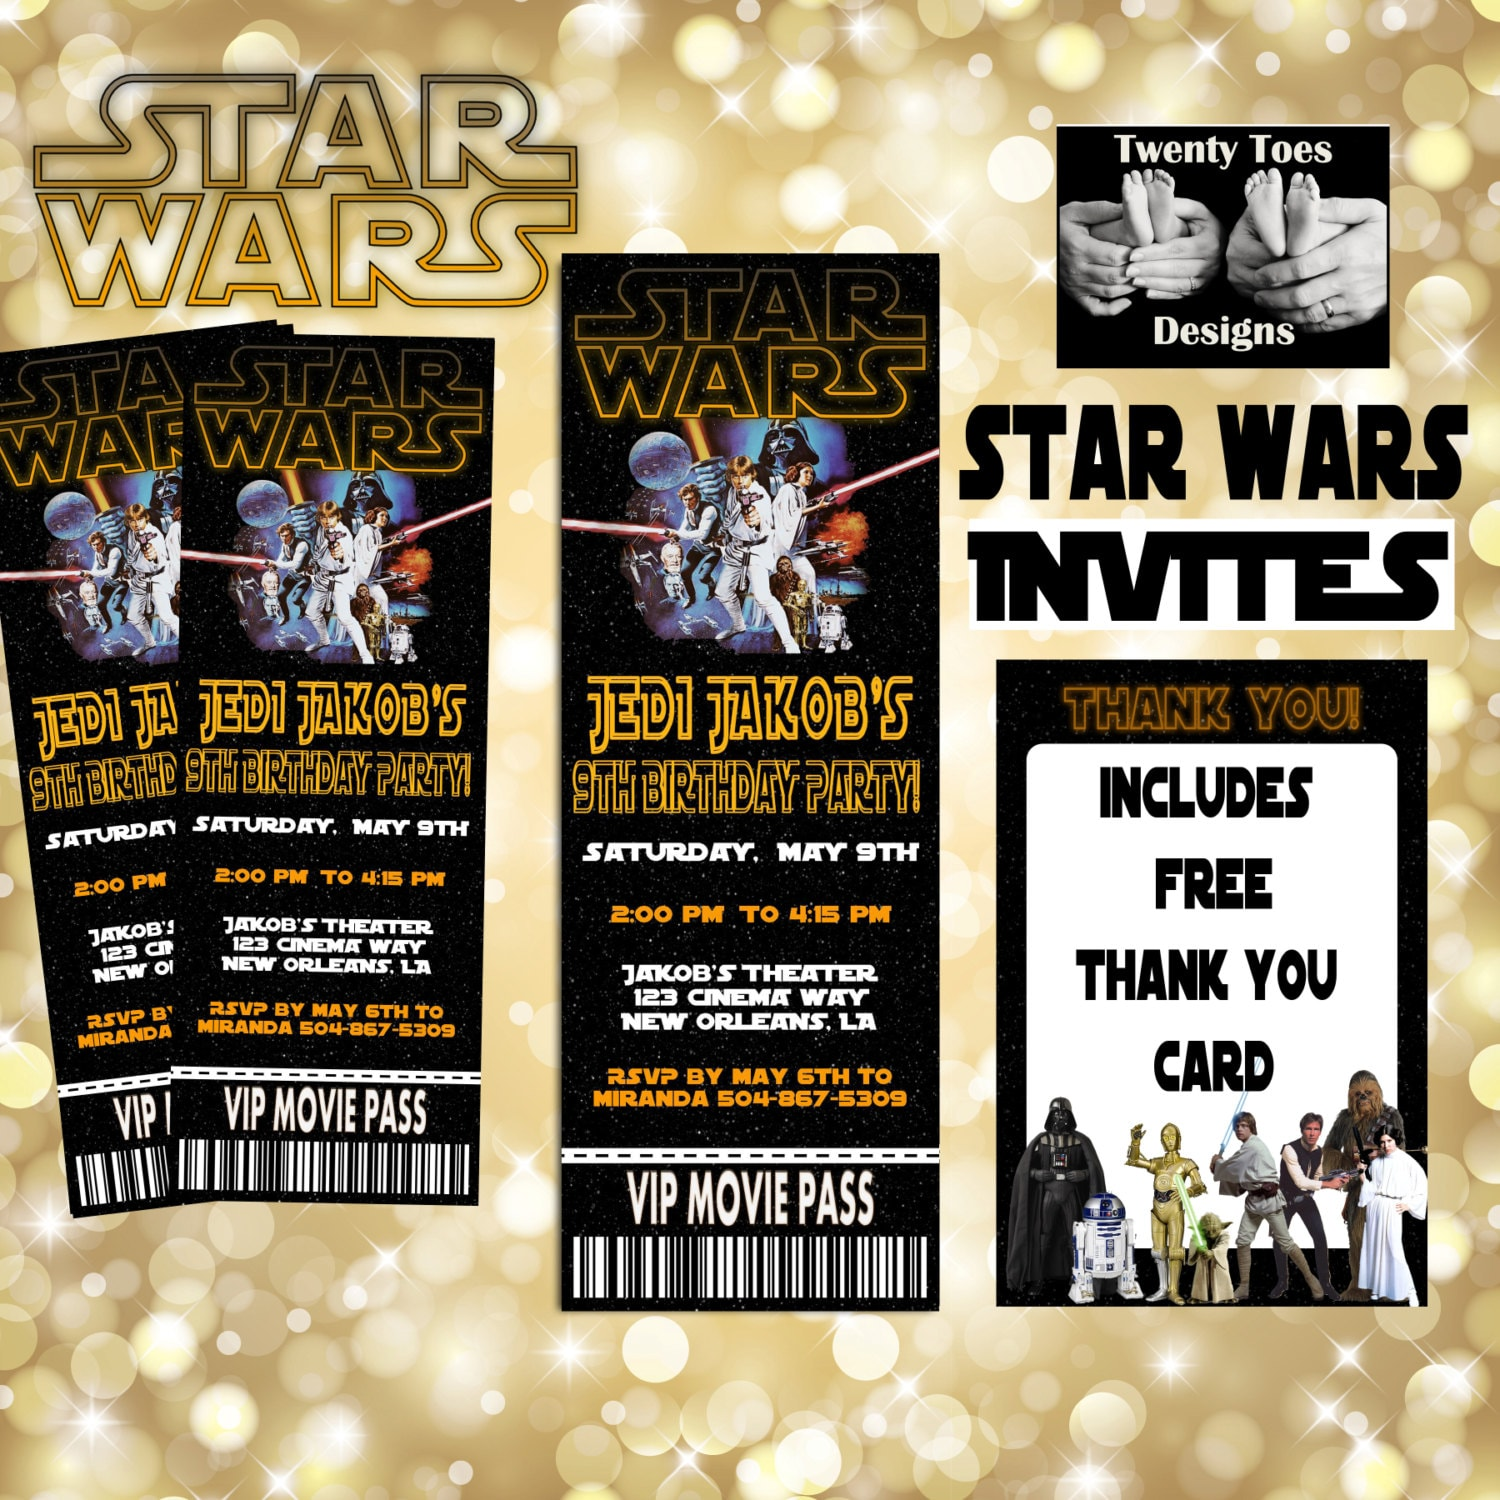 photograph relating to Star Wars Thank You Cards Printable Free known as Star Wars Online video Invitation, Video Ticket, Printable, Video clip Social gathering Birthday Invitation